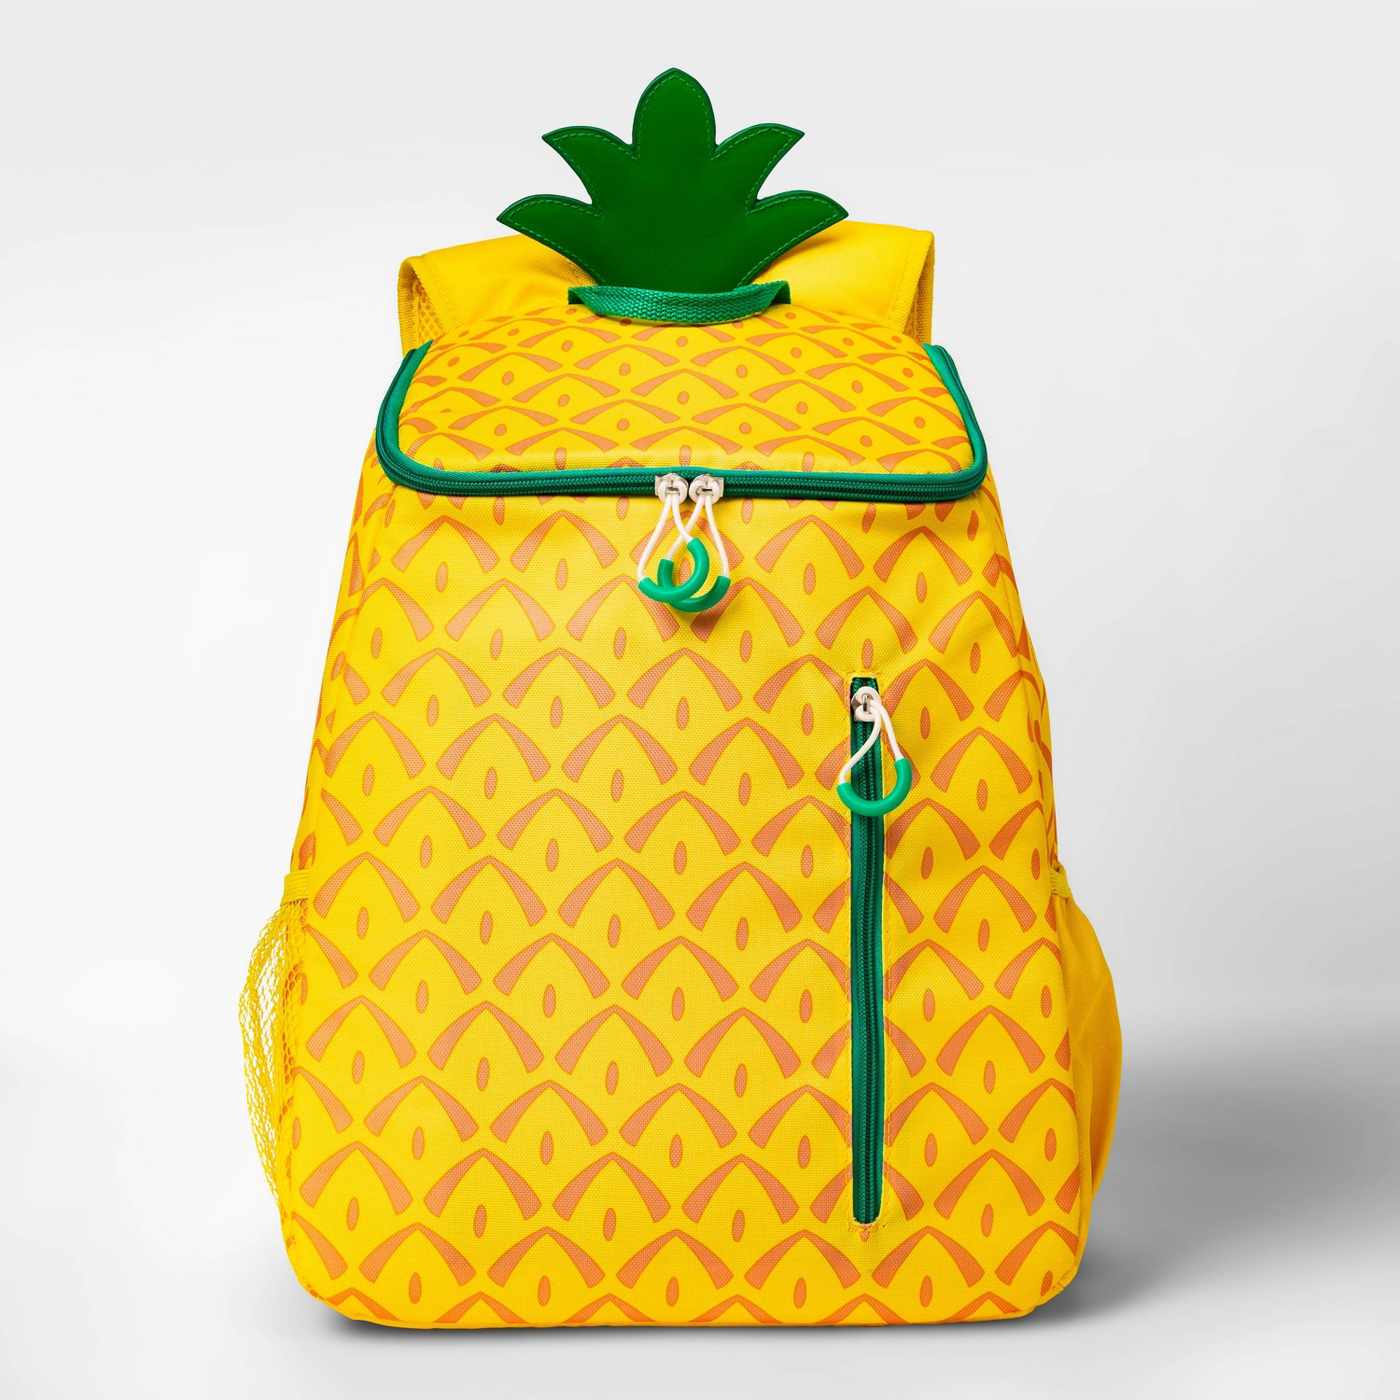 20 Can Backpack Cooler Pineapple - Sun Squad